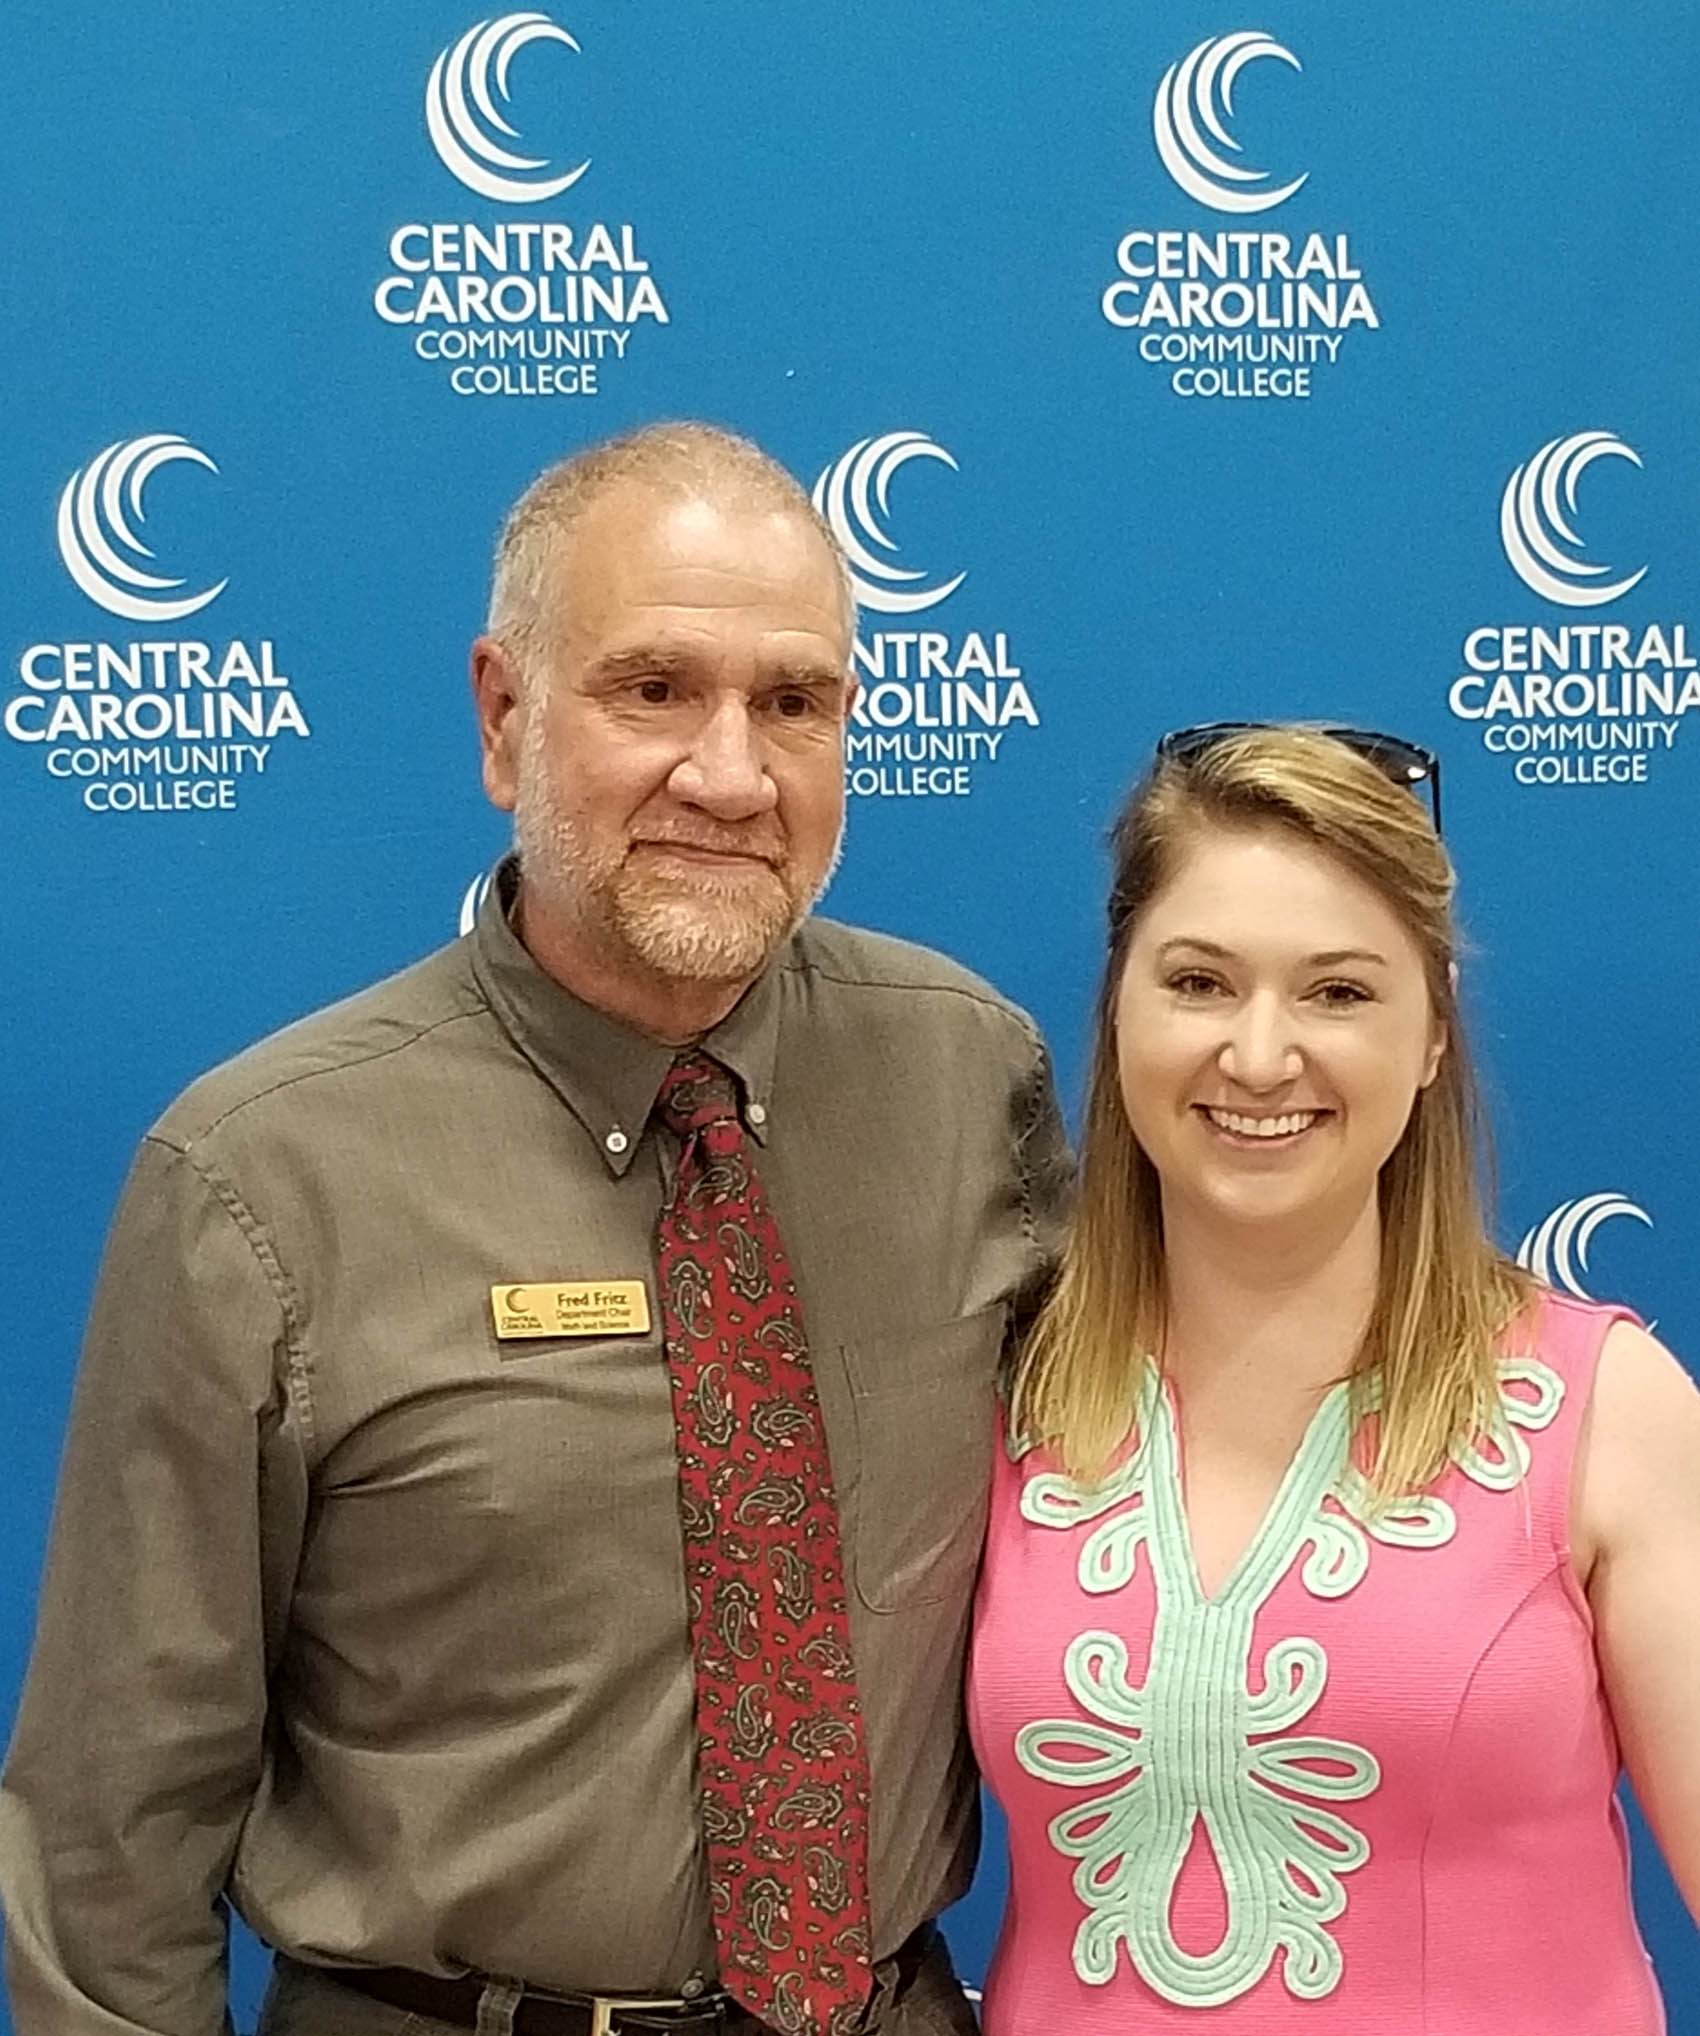 Click to enlarge,  Emma Belcher (right) has been named Central Carolina Community College Advisor of the Year. She is pictured with Fred Fritz, CCCC Dept. Chair, Math & Science. Belcher, who is a Biology instructor and has taught at CCCC since 2015, constitutes an unselfish devotion to students by contributing to their success by offering guidance as they begin their journey at CCCC.  For more information on Central Carolina Community College and its programs, visit www.cccc.edu.